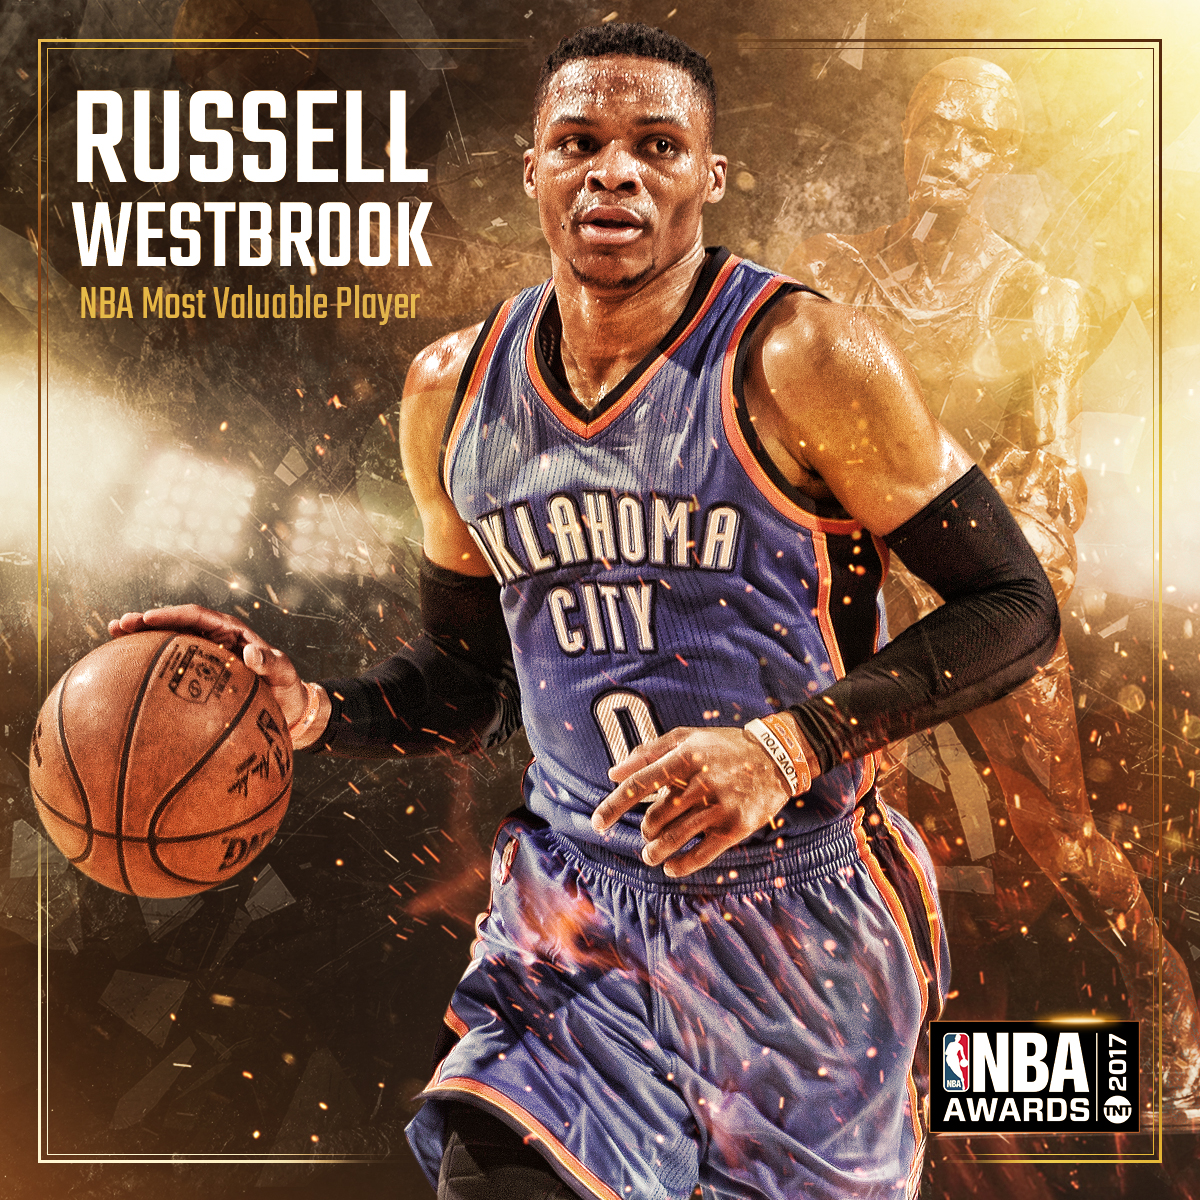 2017 NBA AWARDS - MVP Russell Westbrook